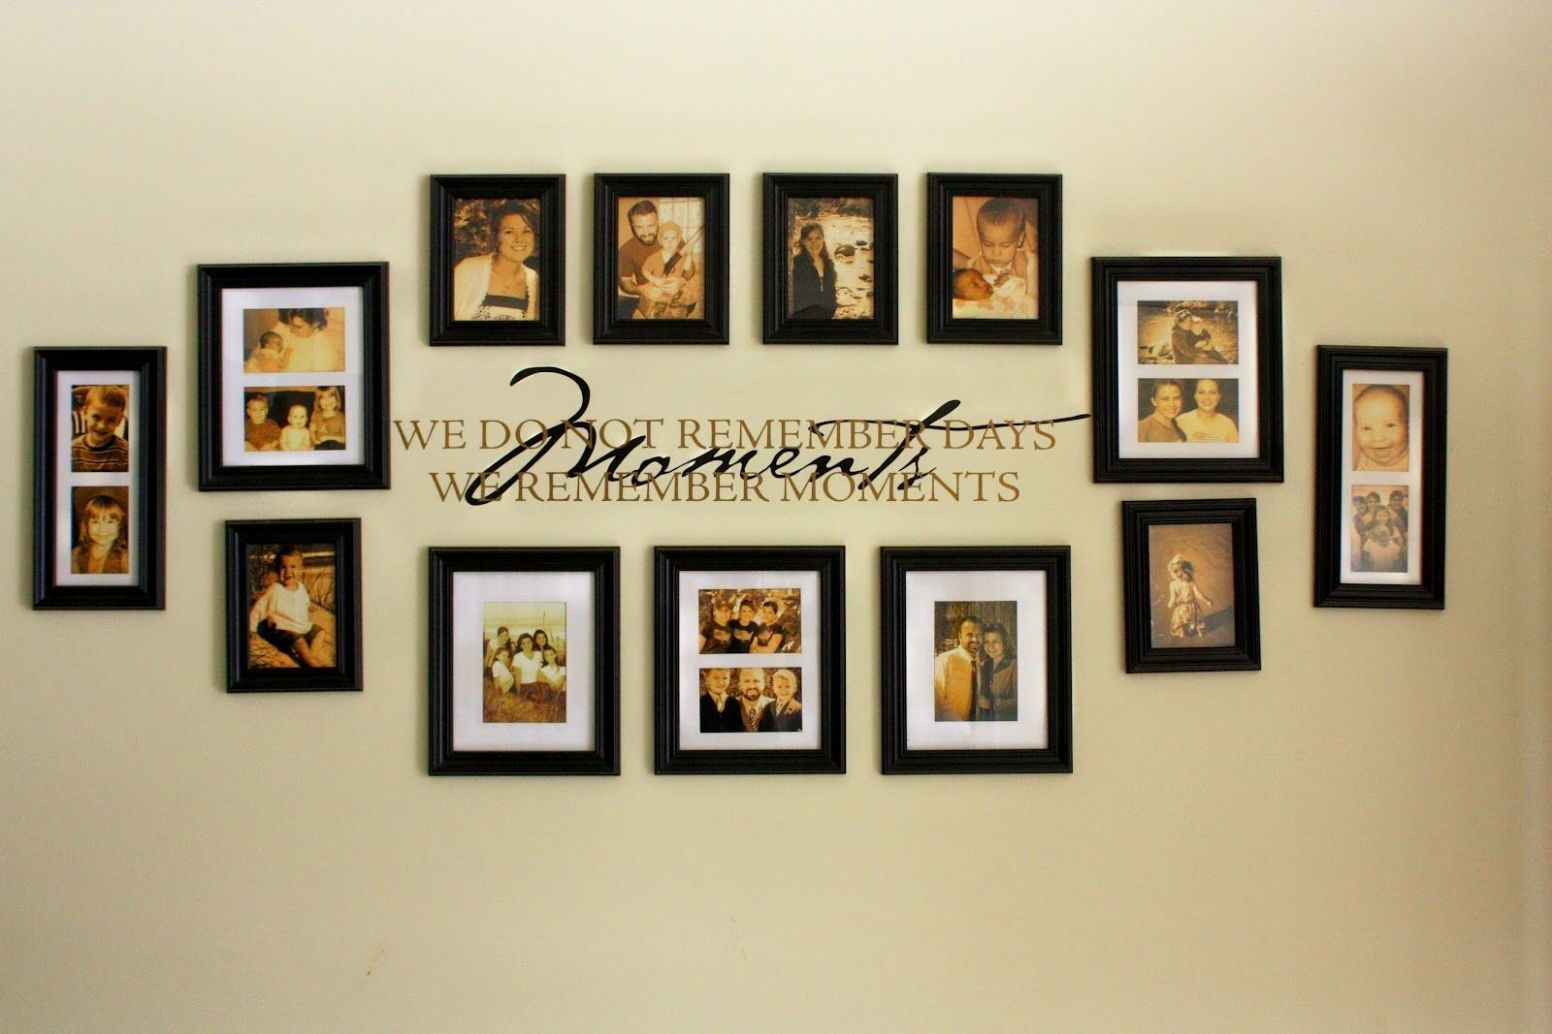 wall collage design ideas - Fanase - wall decor ideas picture frame